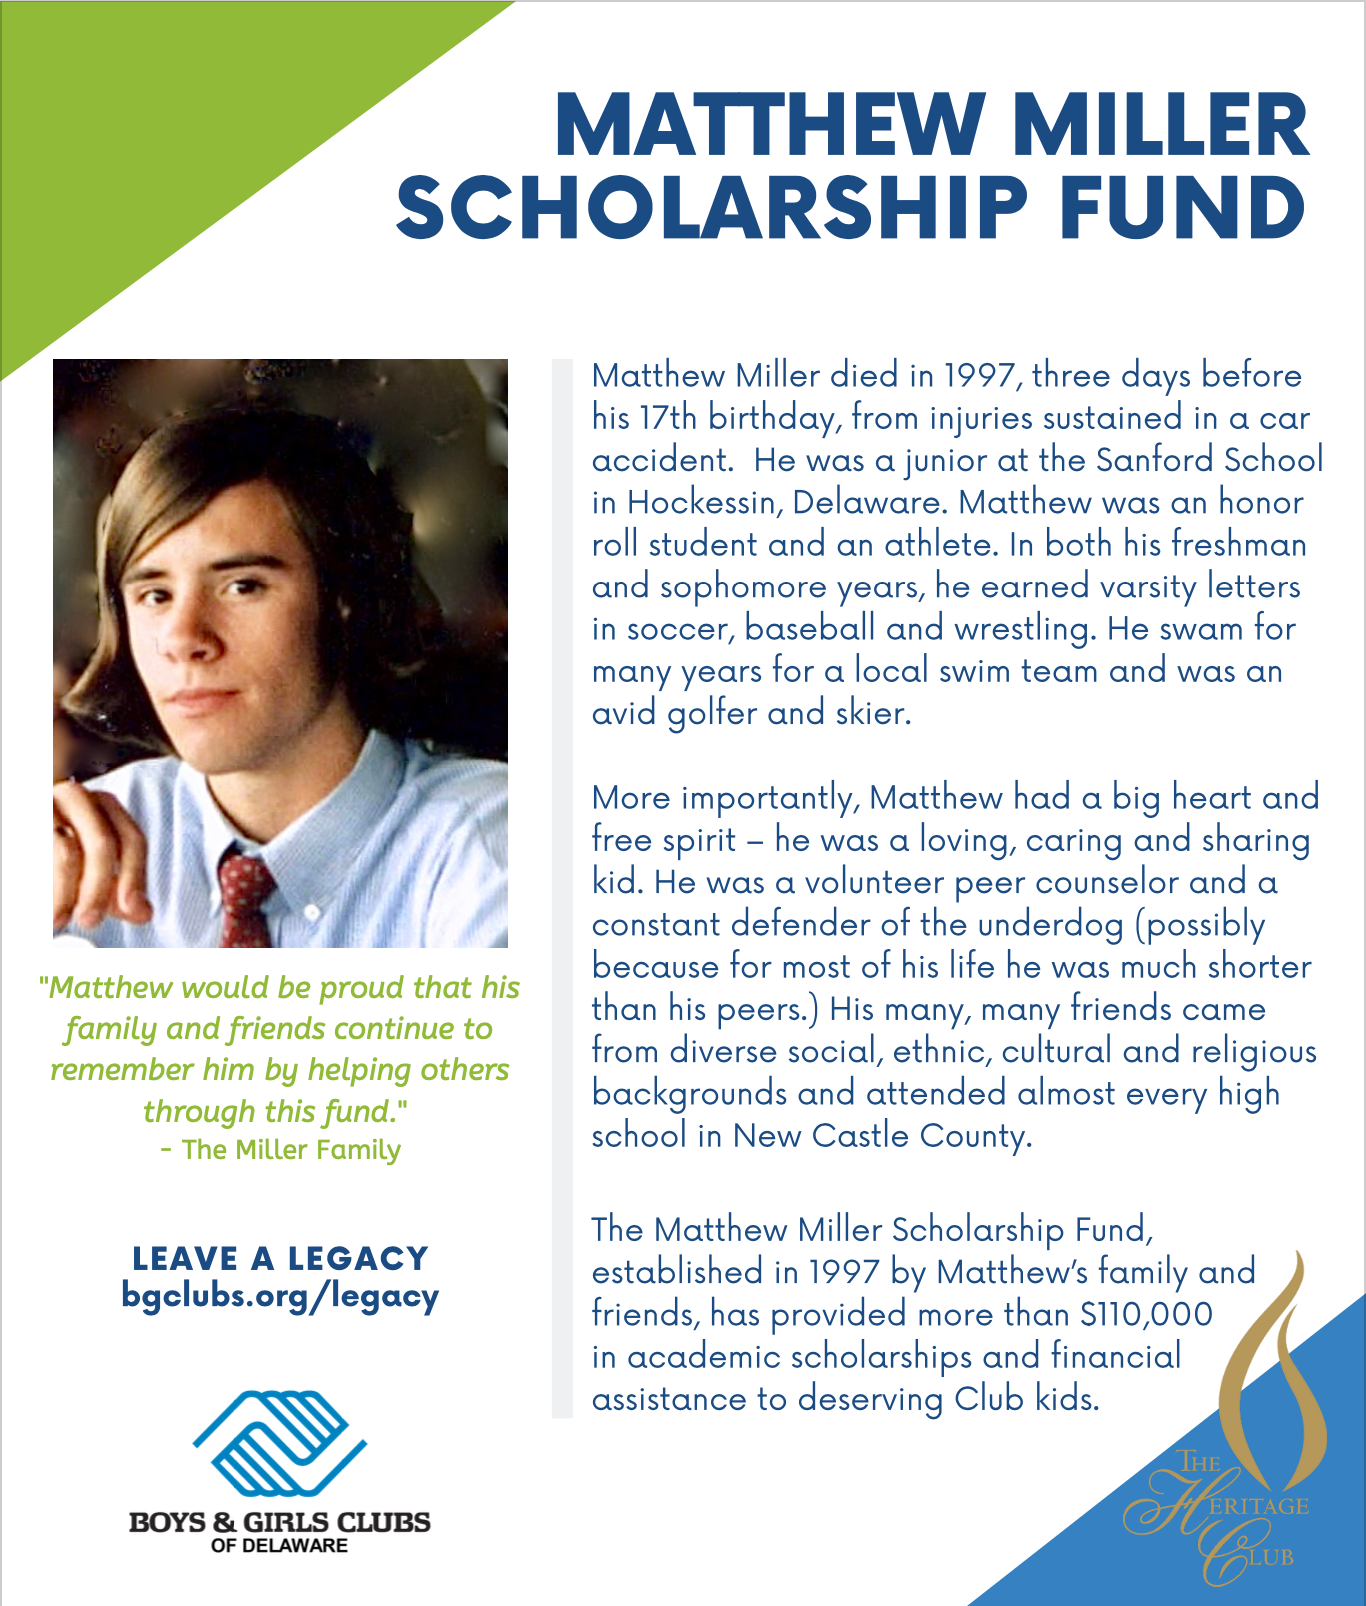 Matthew Miller Scholarship Fund